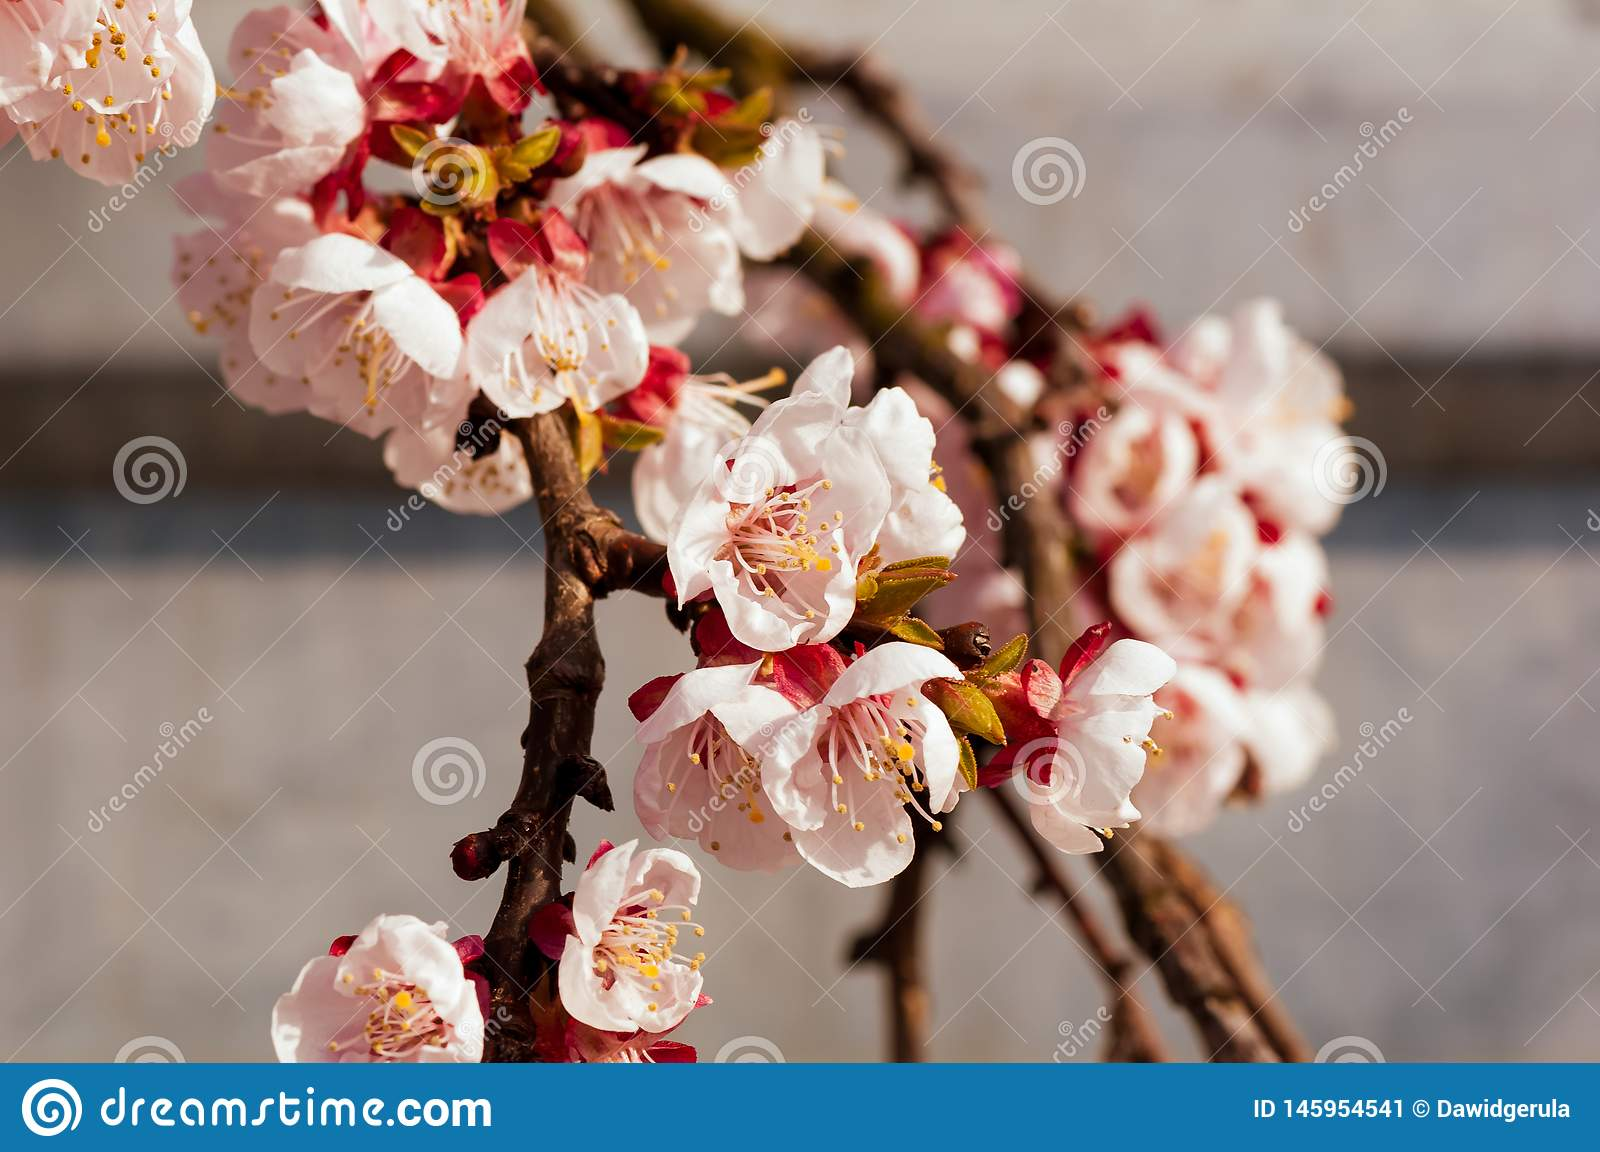 Blooming japanese cherry tree. Blossom white, pink sakura flowers with bright white flowers in the background